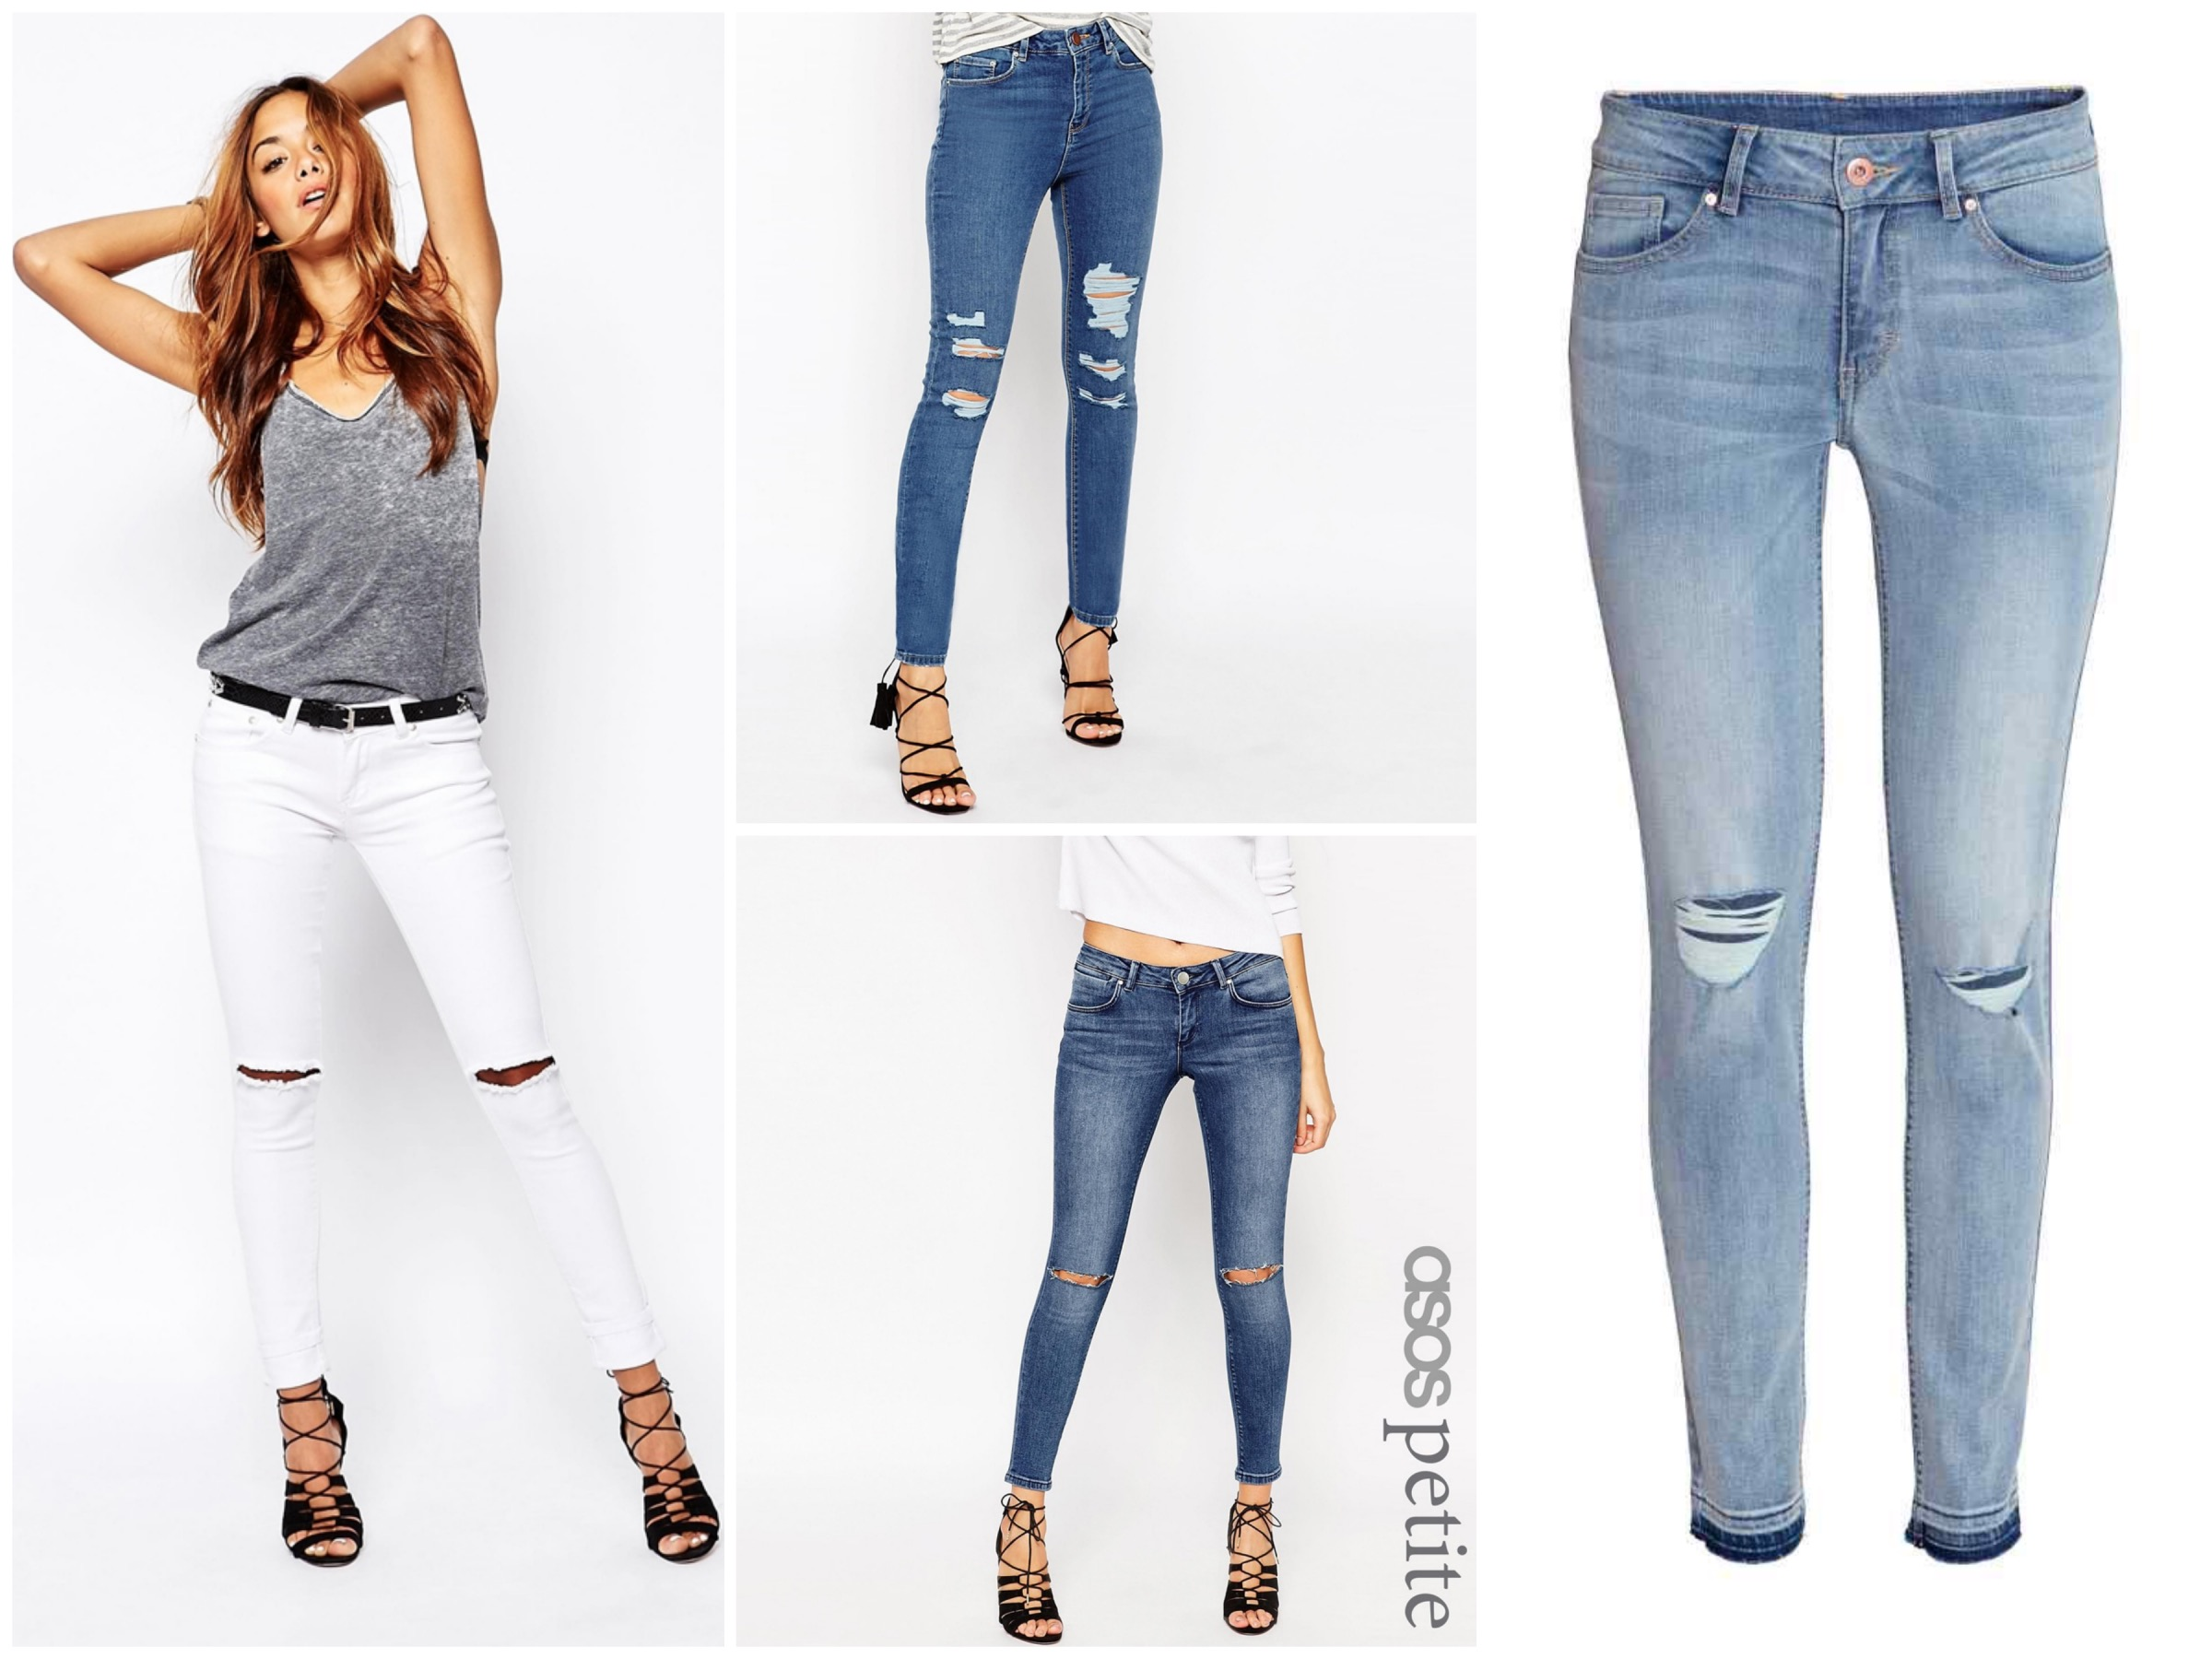 Ripped light blue jeans - Asos & H&M